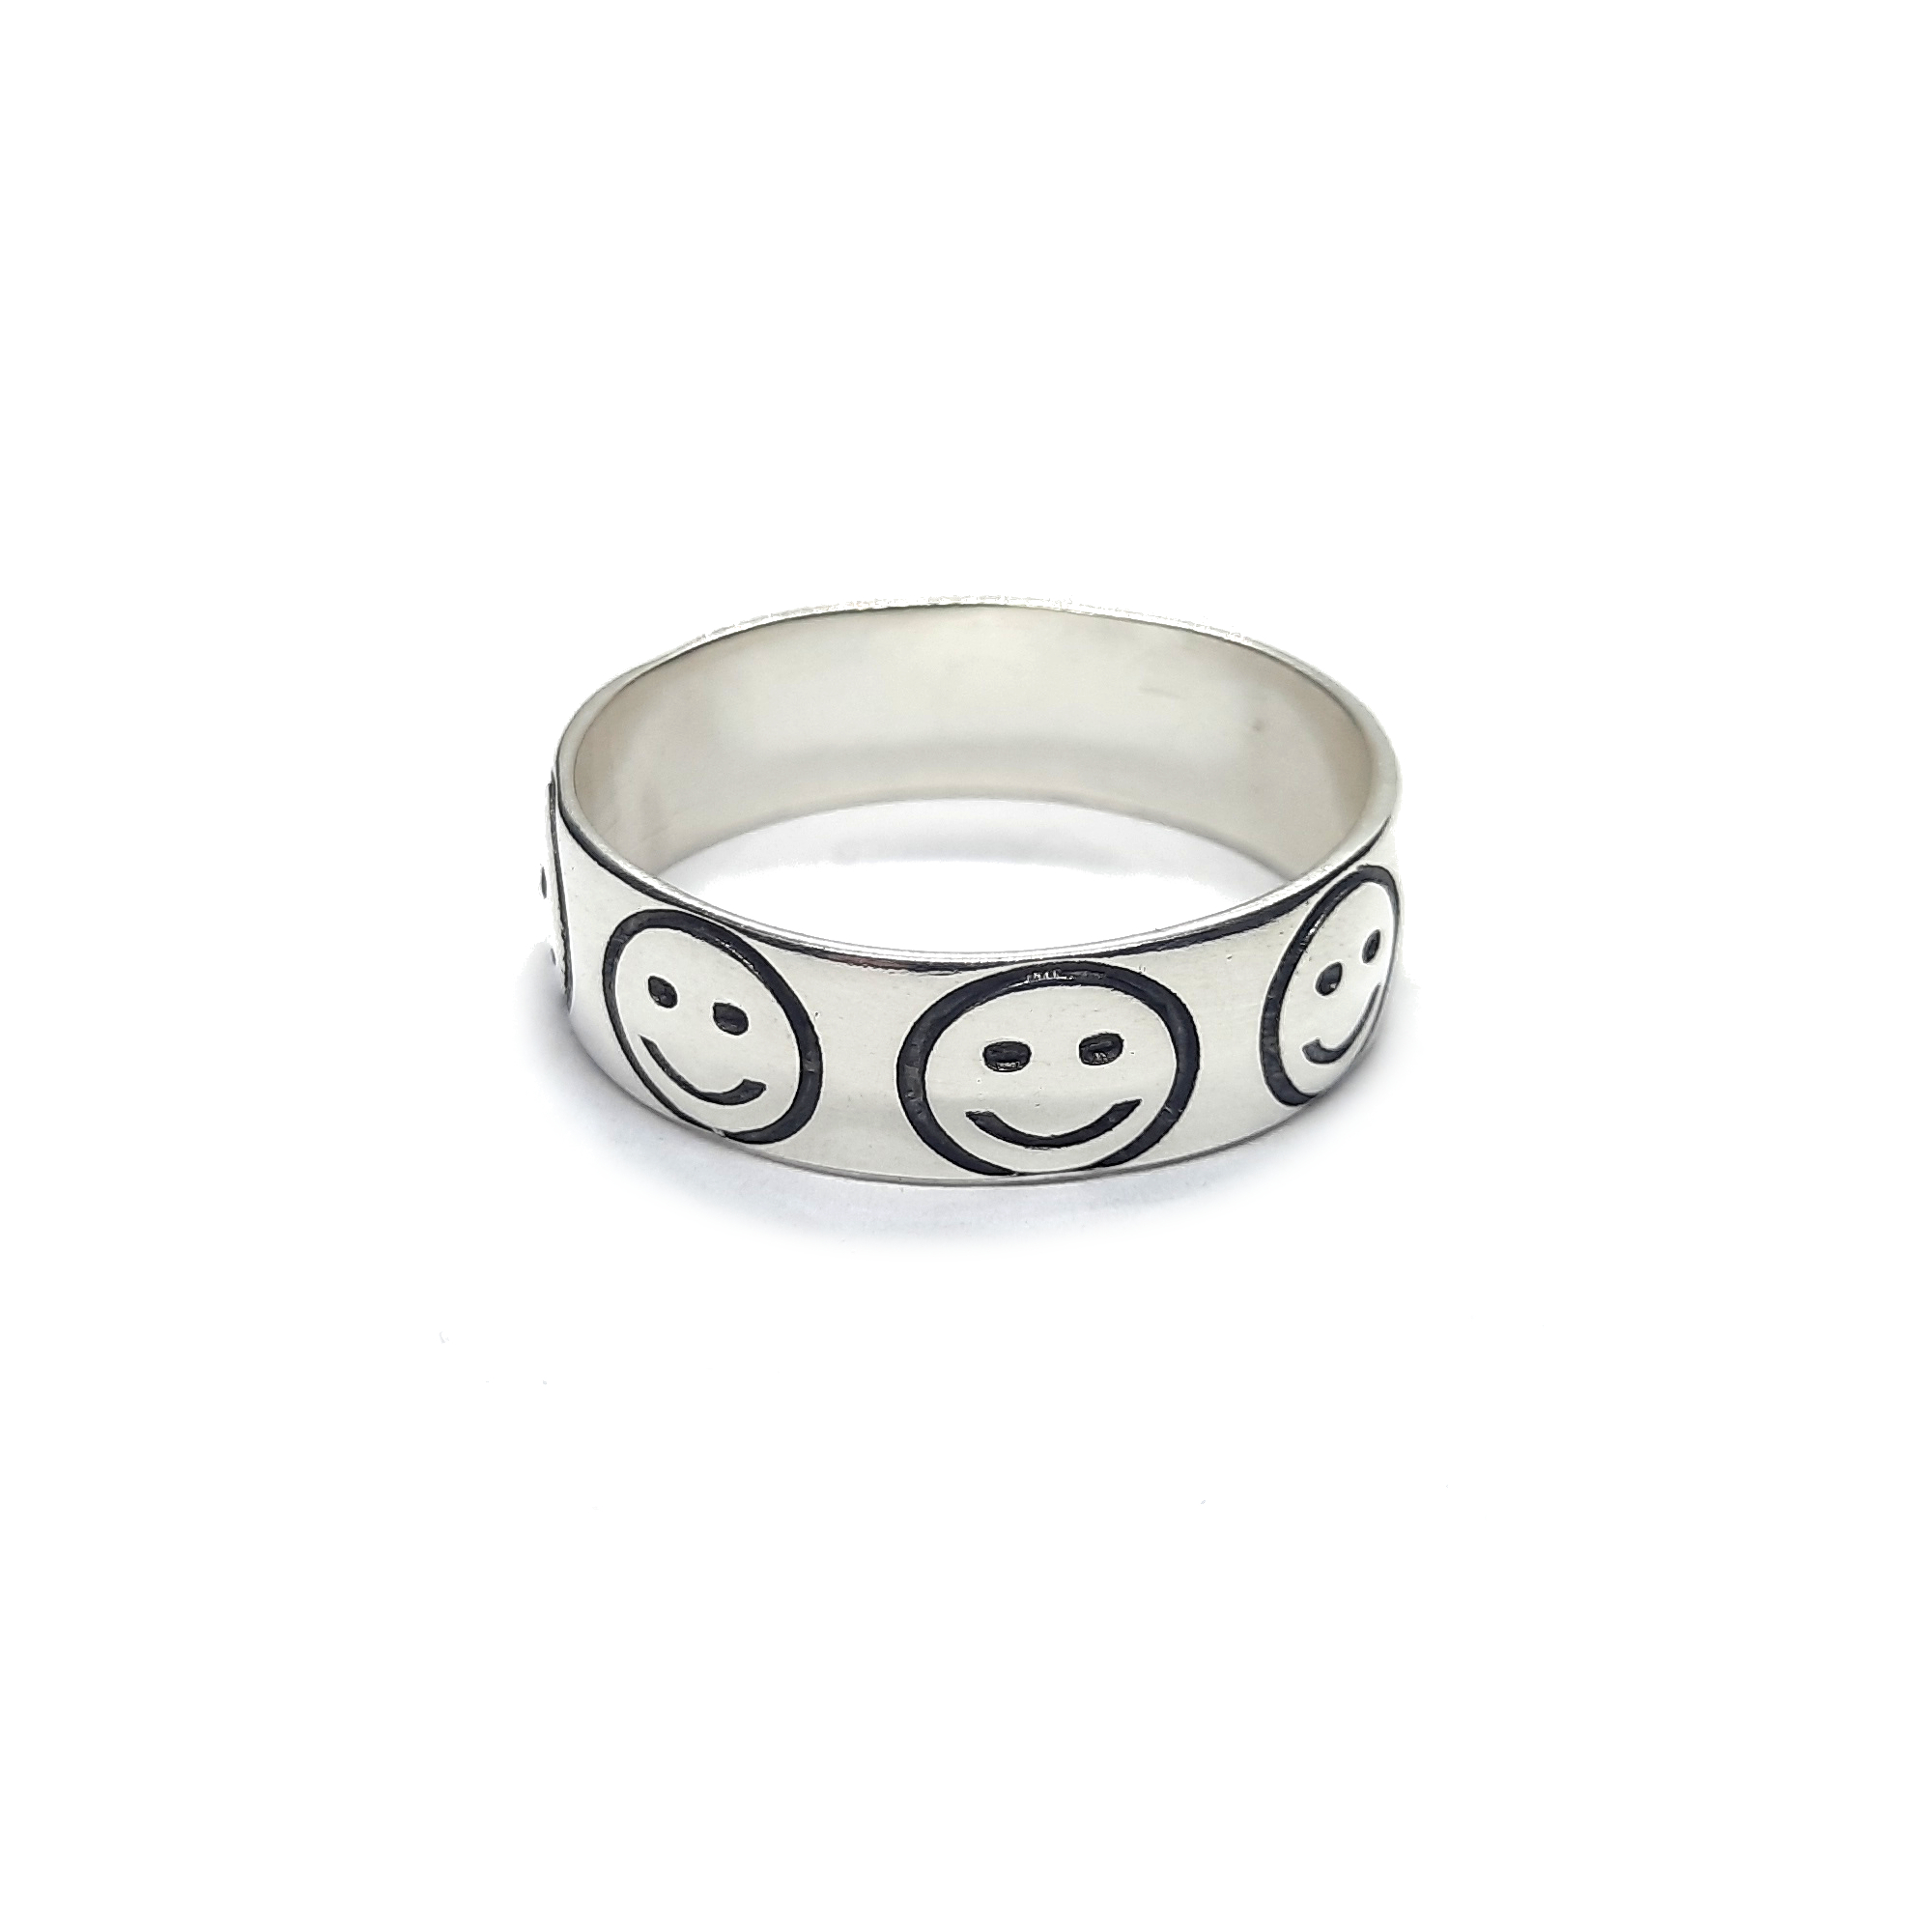 Silver ring - R002224